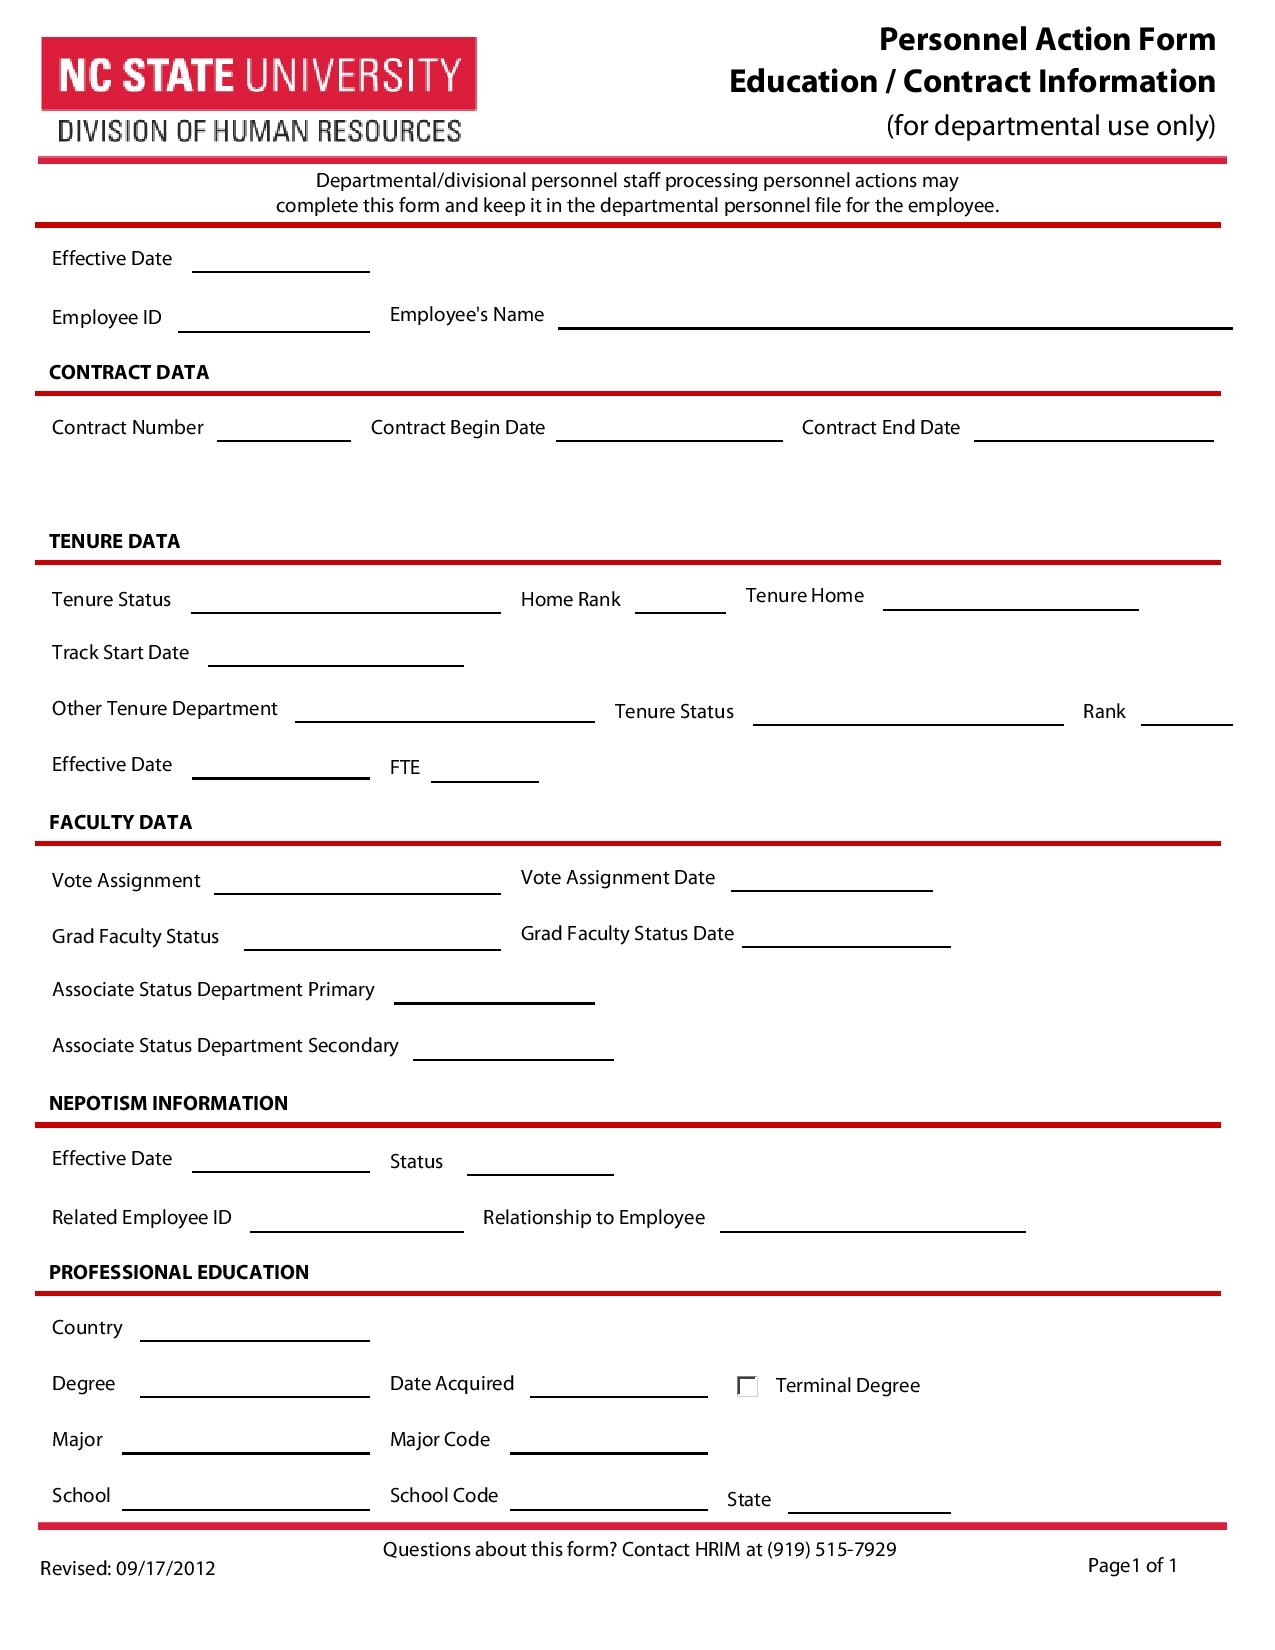 personnel action form education contract information page 001